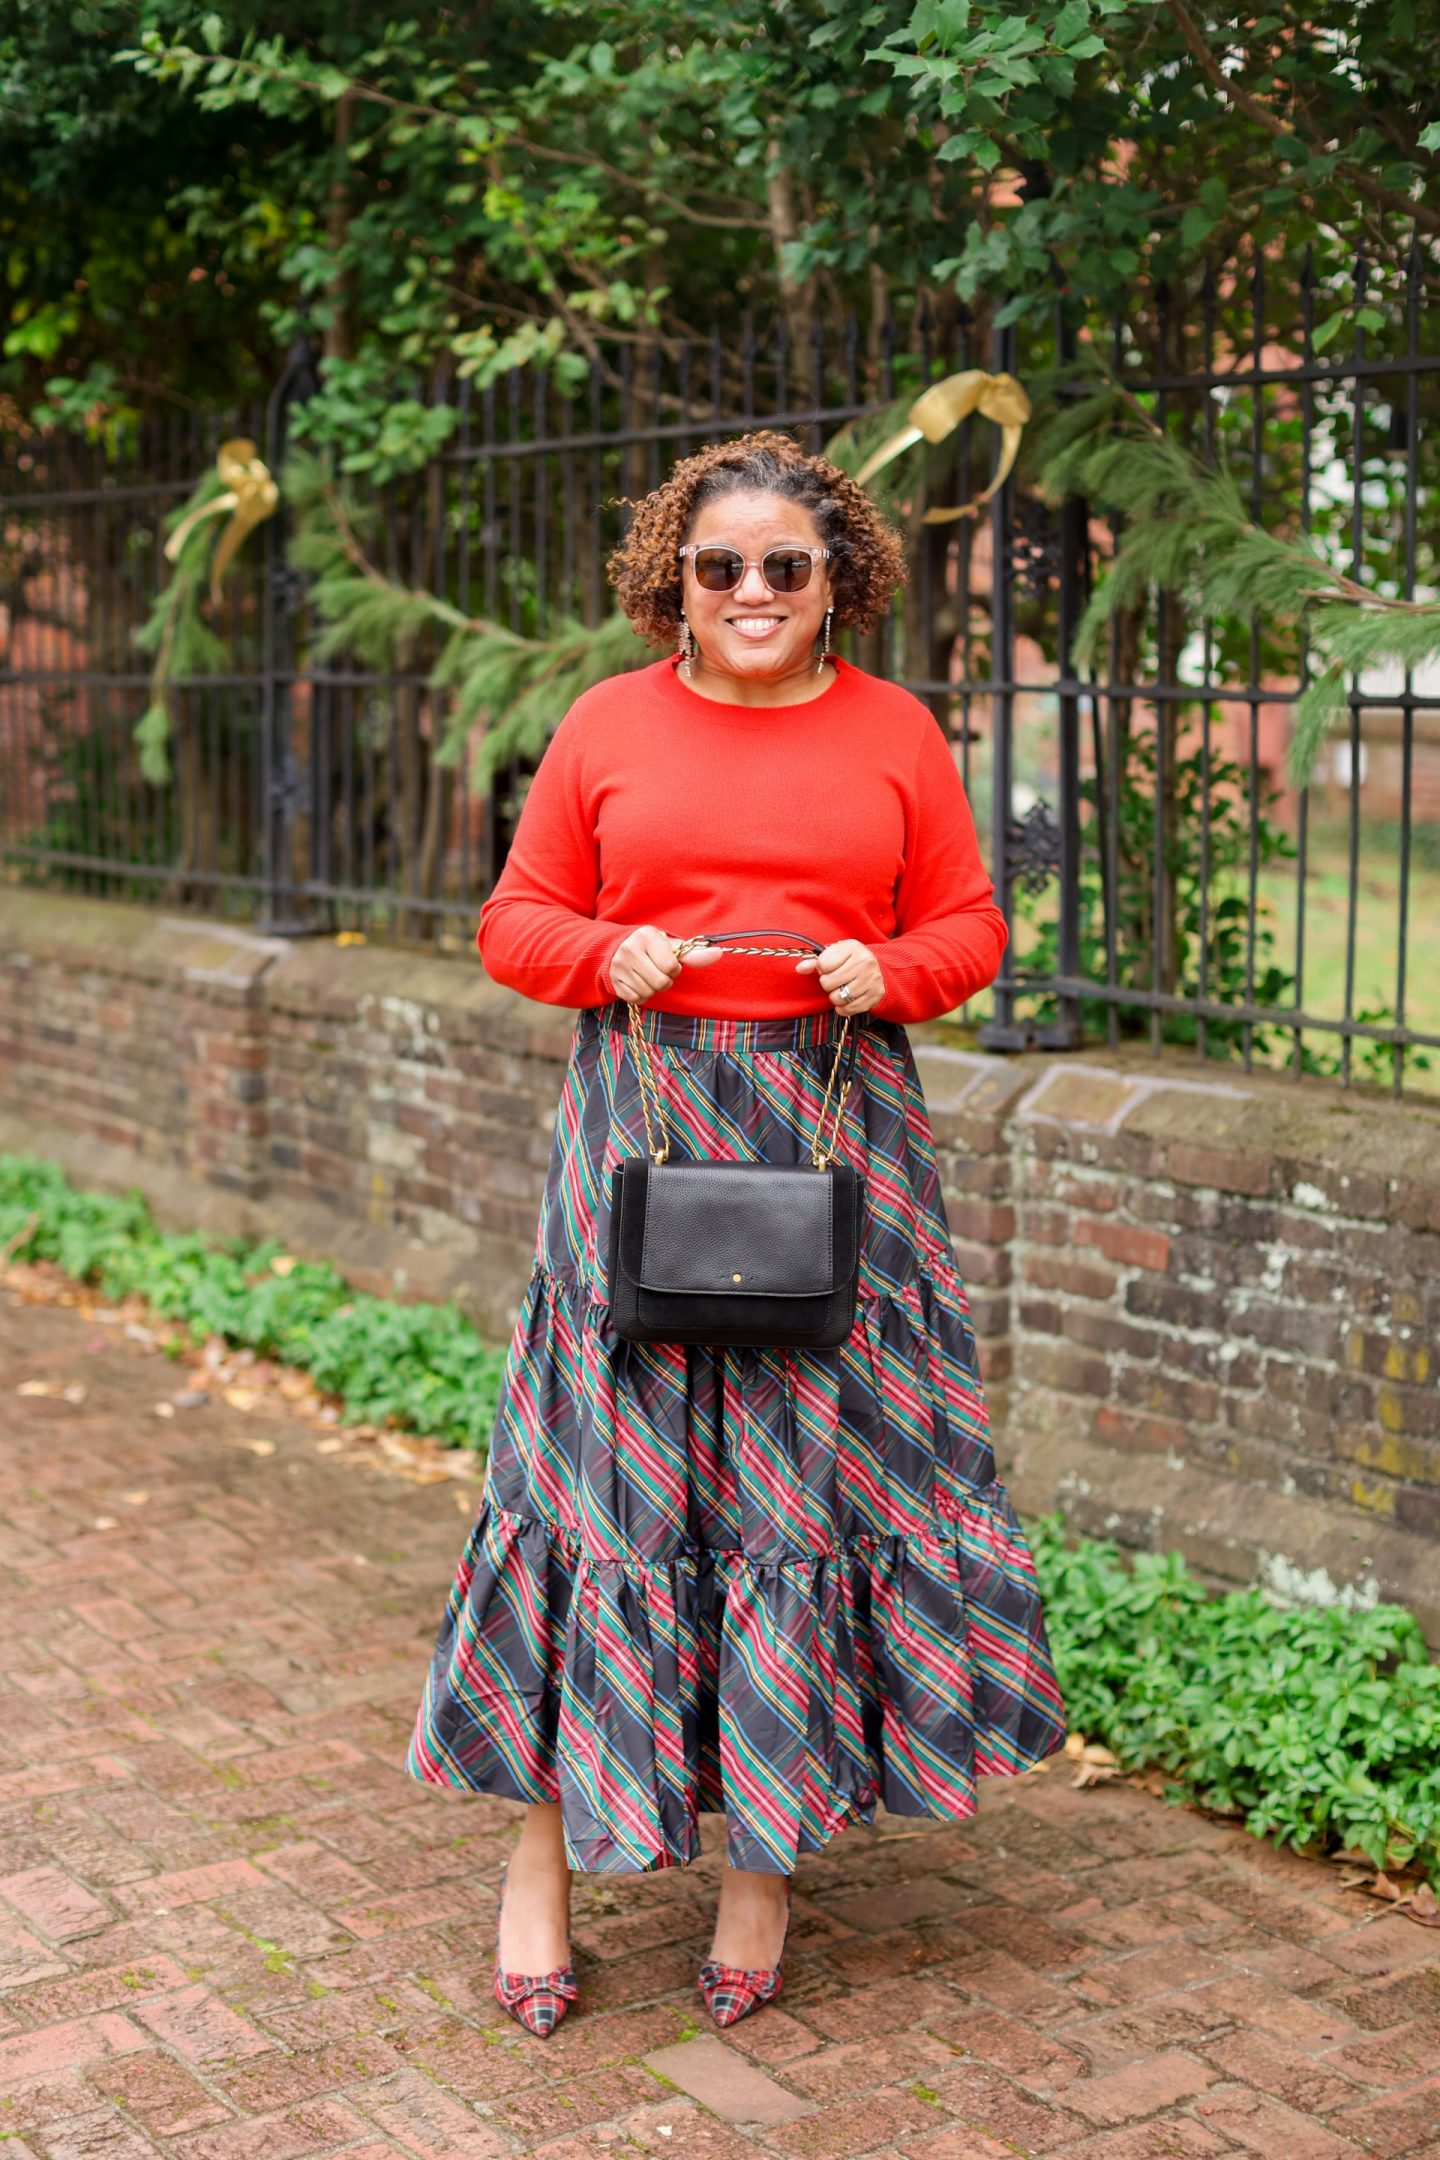 Holiday Outfits by popular Kentucky fashion blog, Really Rynetta: image of a woman standing outside and wearing a tartan plaid maxi skirt, red shirt, and tartan plaid bow embellished shoes.